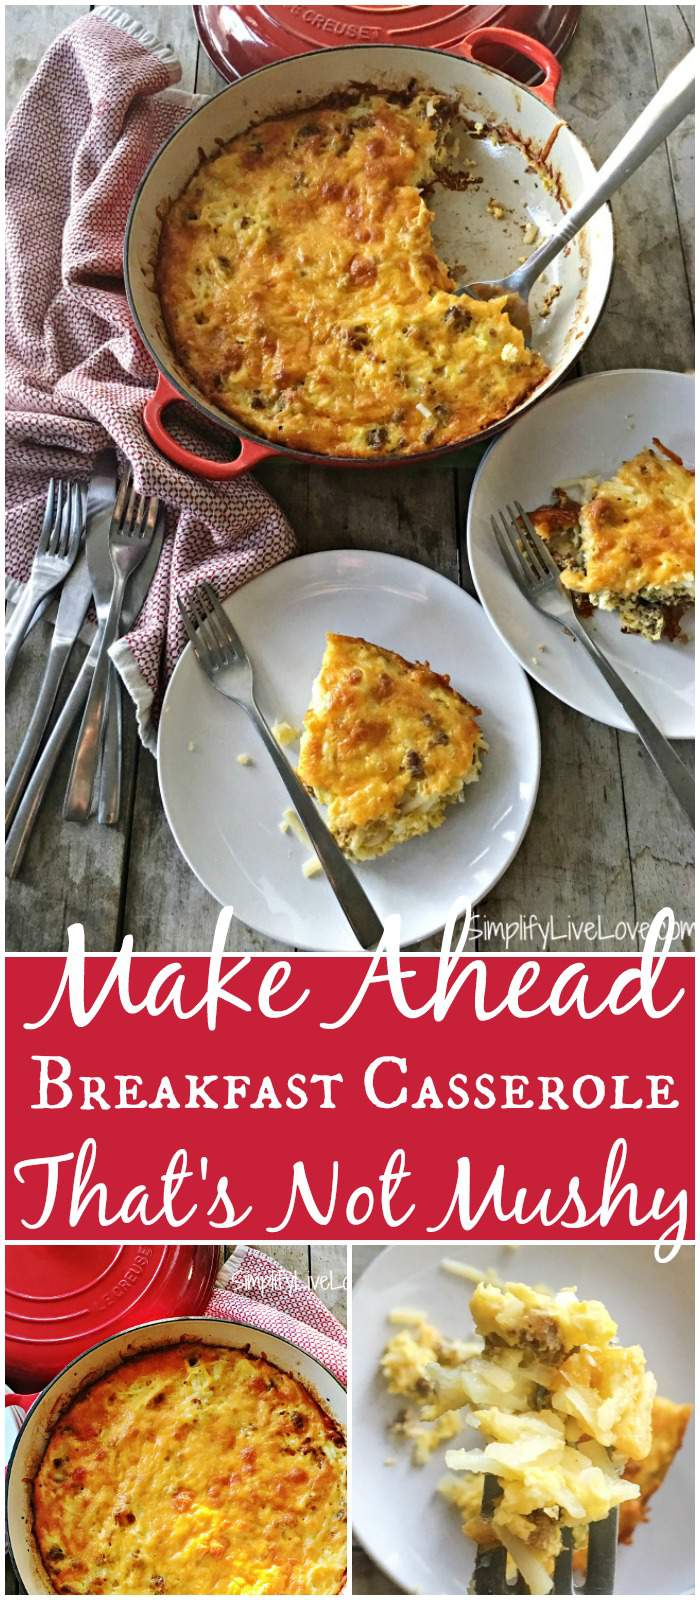 Make Ahead Breakfast Casserole That's Not Mushy - 10 minute prep, 5 easy ingredients a must have recipe for brunch or breakfast for dinner.